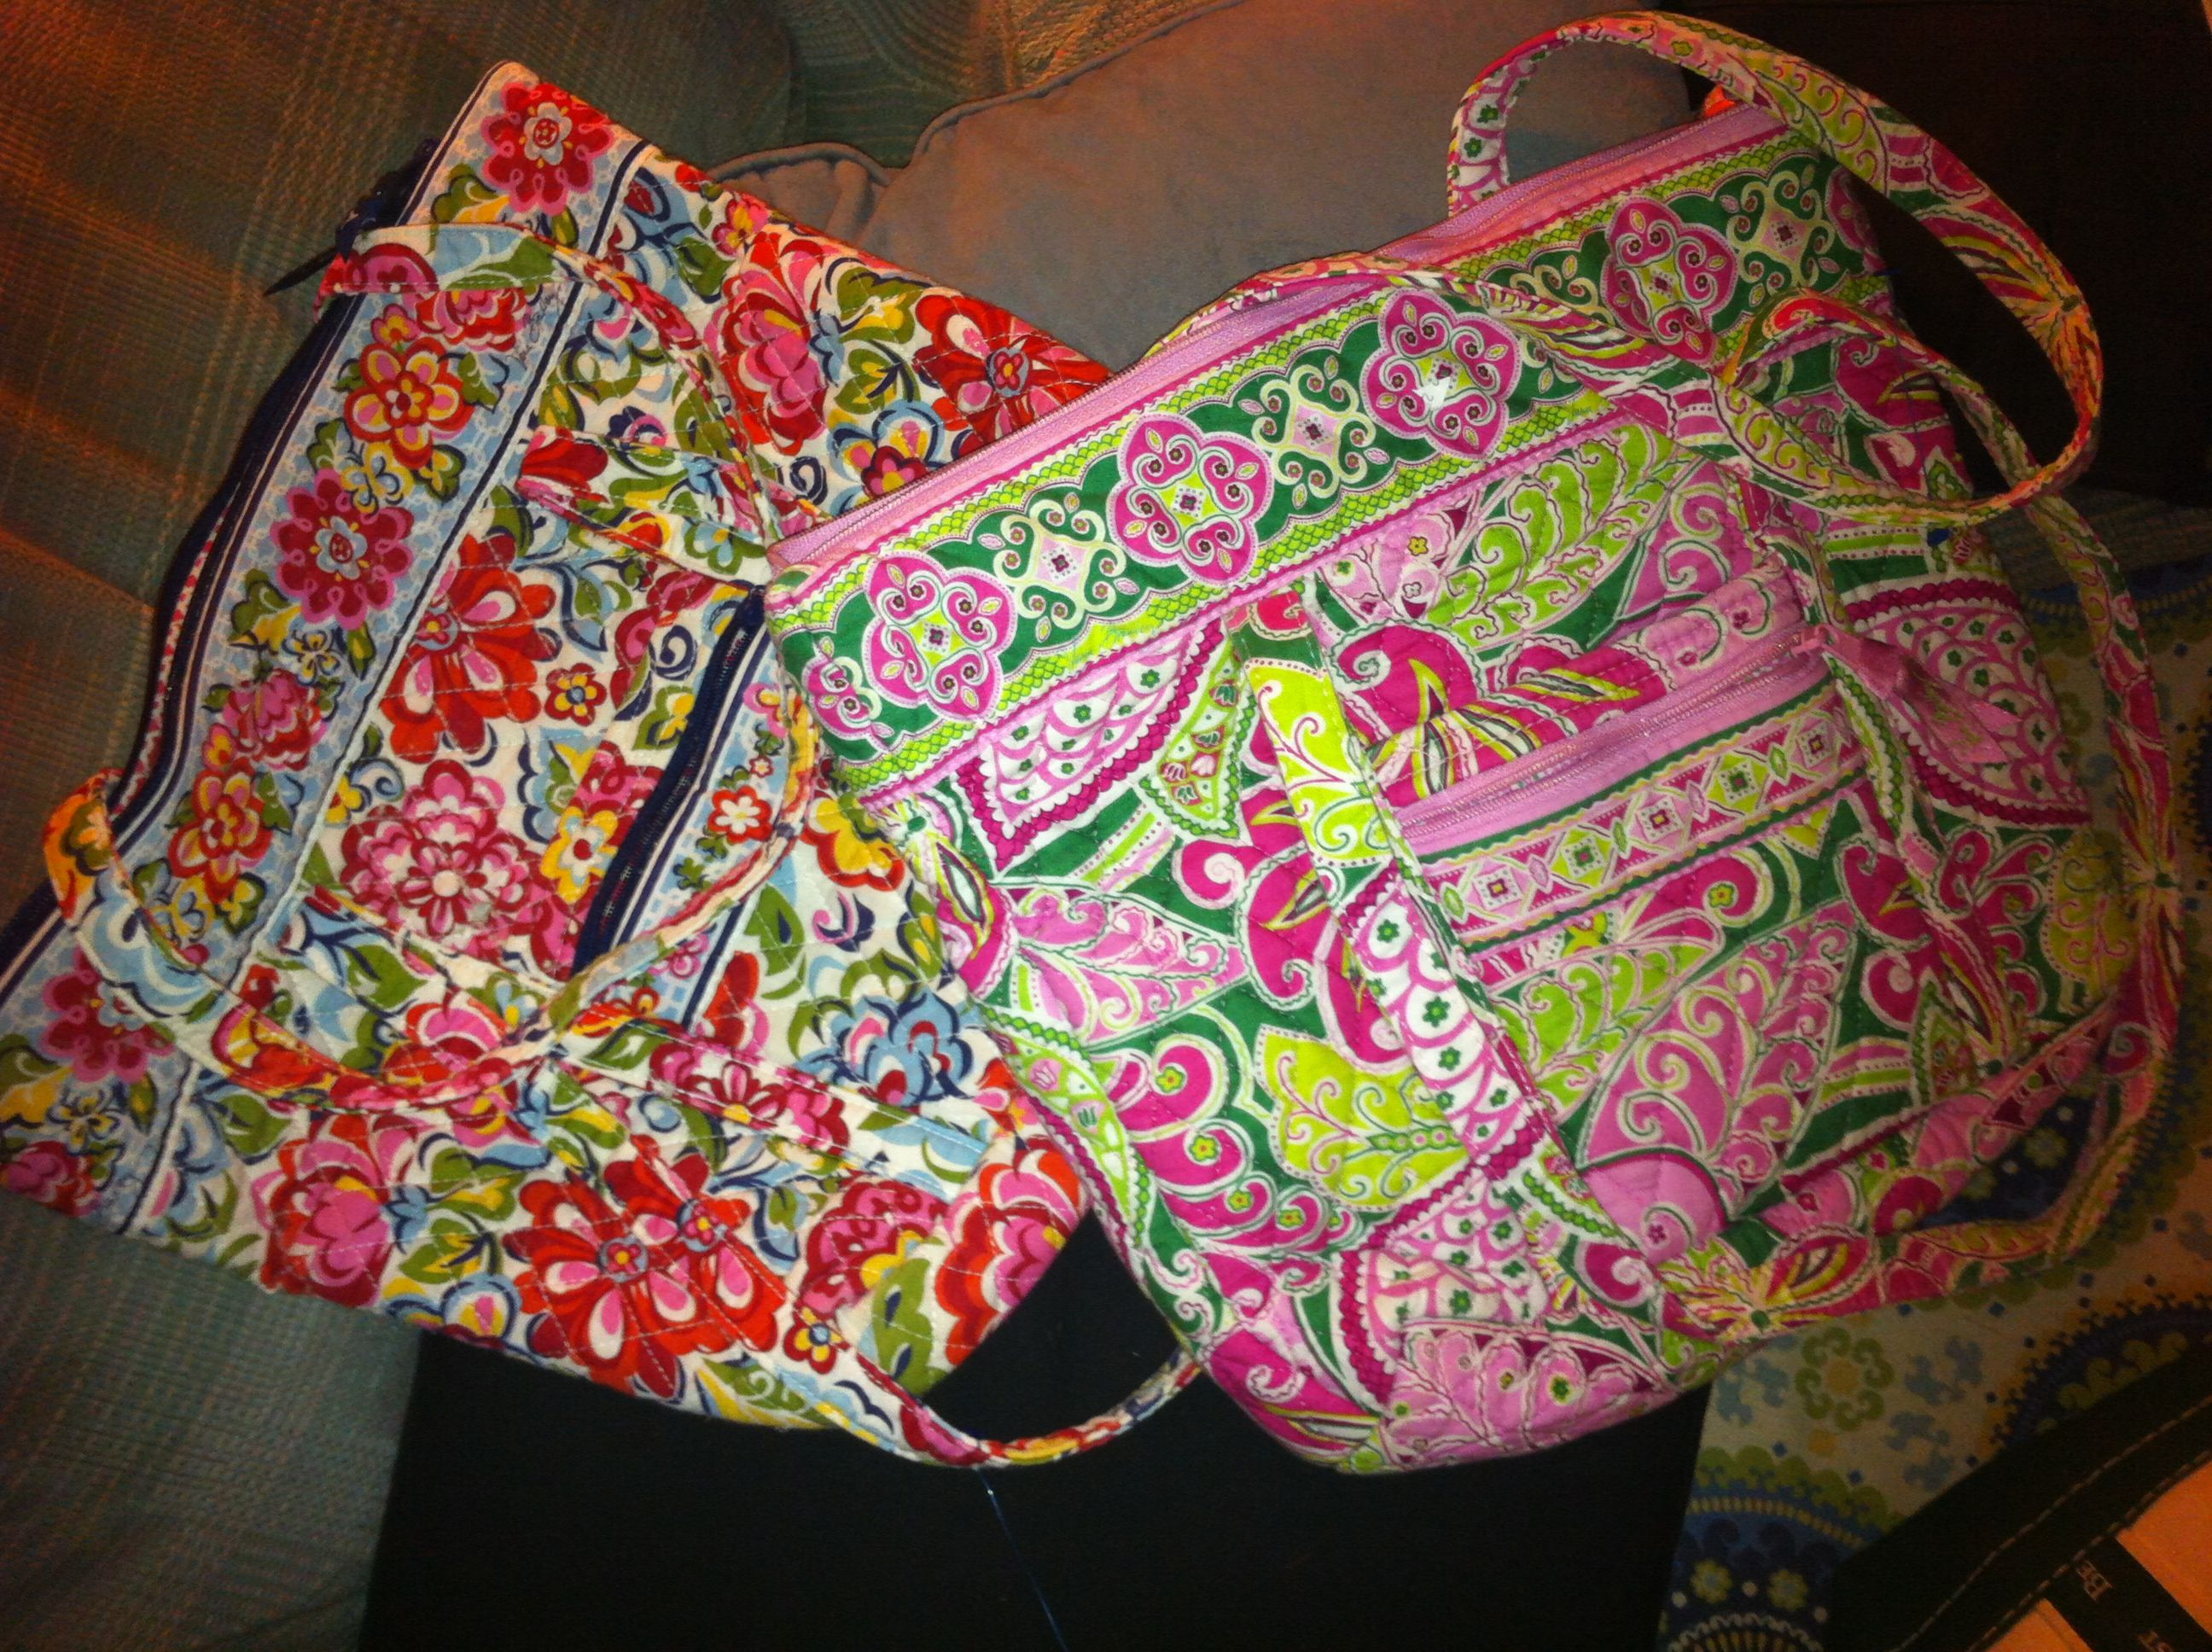 Vera Bradley bags found at Goodwill. Tags were in the inside pockets of the bags. Bought them for $14.99 each